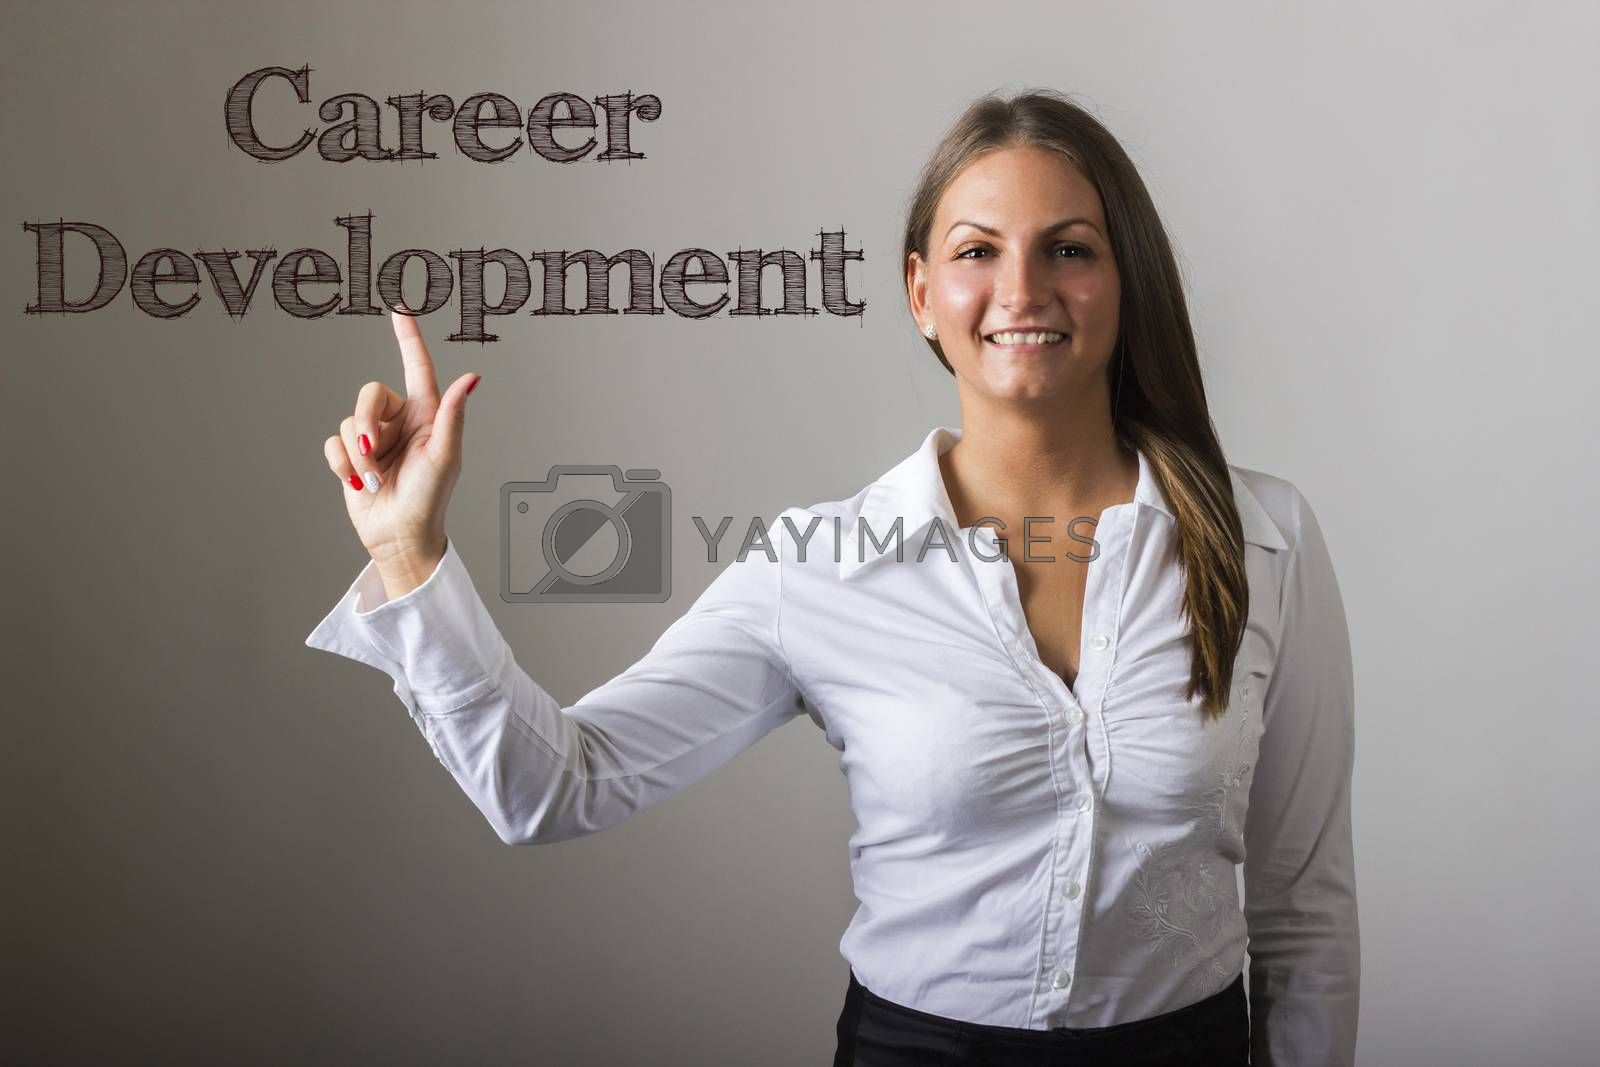 Career Development - Beautiful girl touching text on transparent surface - horizontal image